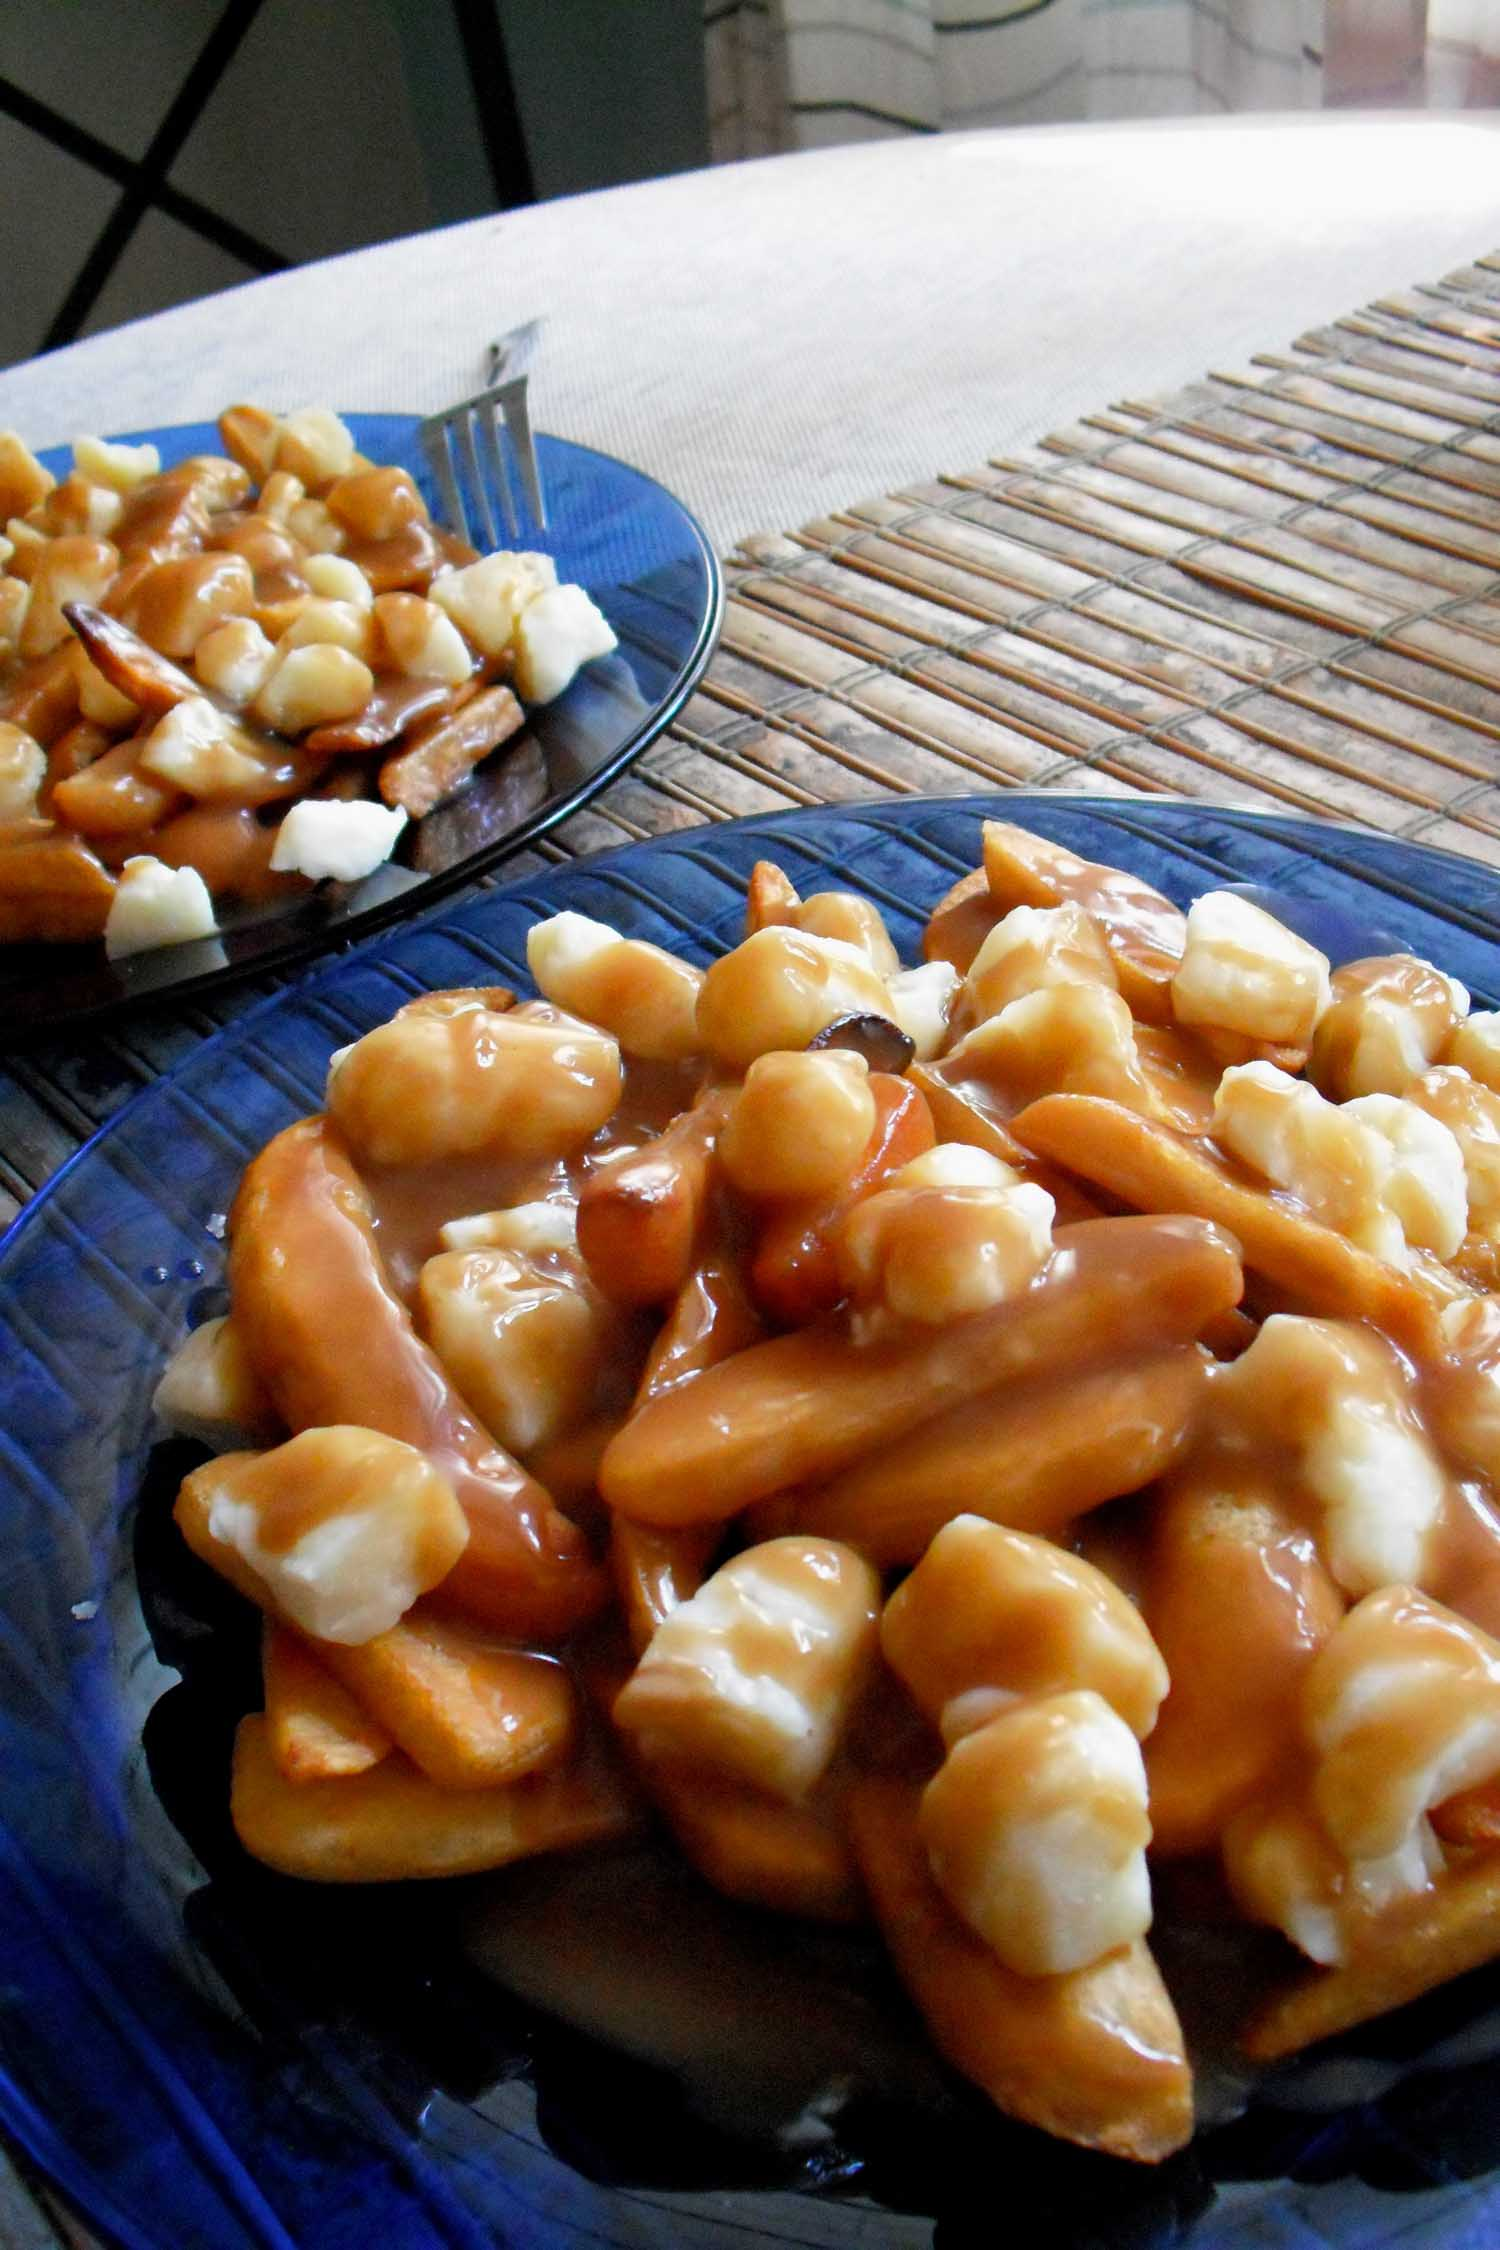 Typical Canadian food called poutine, gravy and cheese on fries on a blue plate